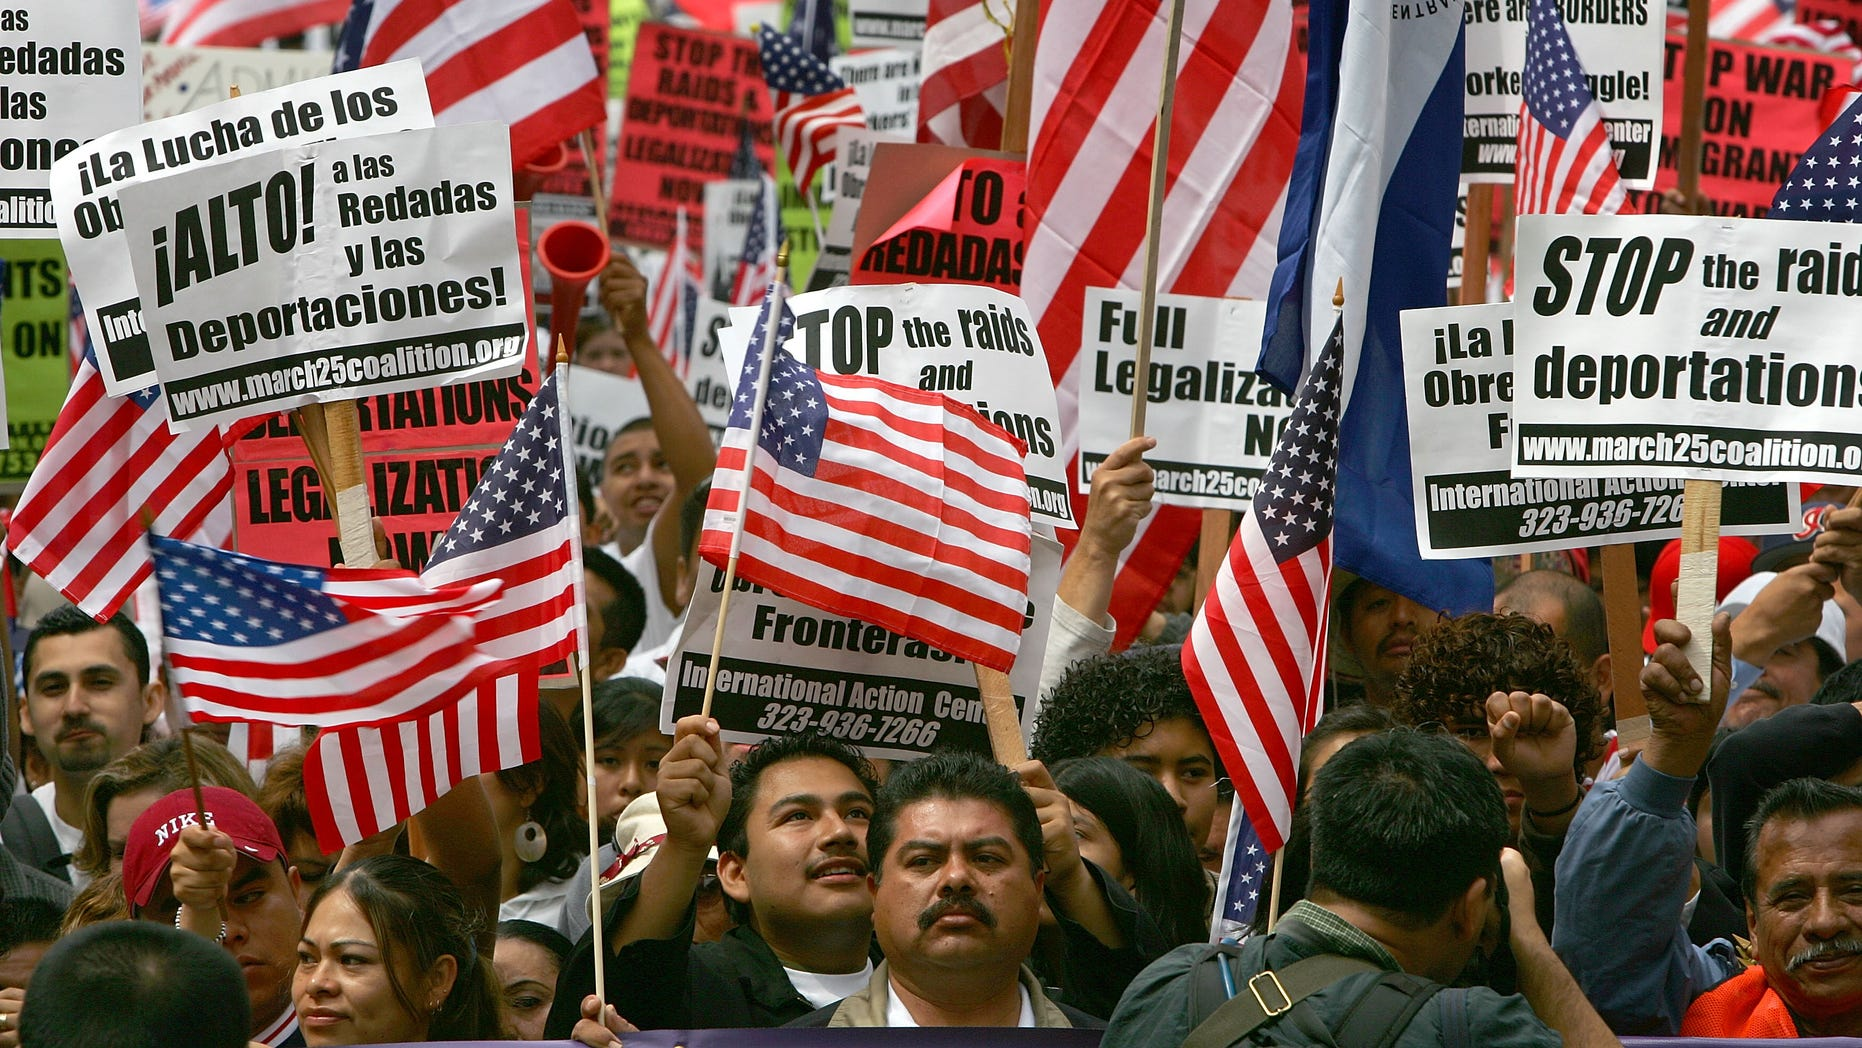 LOS ANGELES - MAY 1:  Demonstrators march to City Hall in one of several May Day marches and rallies in southern California and in at least 75 cities nationwide to press for immigrant and labor rights May 1, 2007 in Los Angeles, California. The protest is expected to be smaller than the May 1, 2006 march that drew more than 650,000 protesters, the largest turnout in Los Angeles history when large numbers of illegal immigrants carrying the flags of both the U.S. and their countries of origin sparked an anti-immigrant rights backlash among conservatives. Some of the anger that motivated protesters in 2006 was reportedly lessened as Congress failed to pass legislation that would have criminalized illegal immigrants and toughened U.S.-Mexico border enforcement.  (Photo by David McNew/Getty Images)